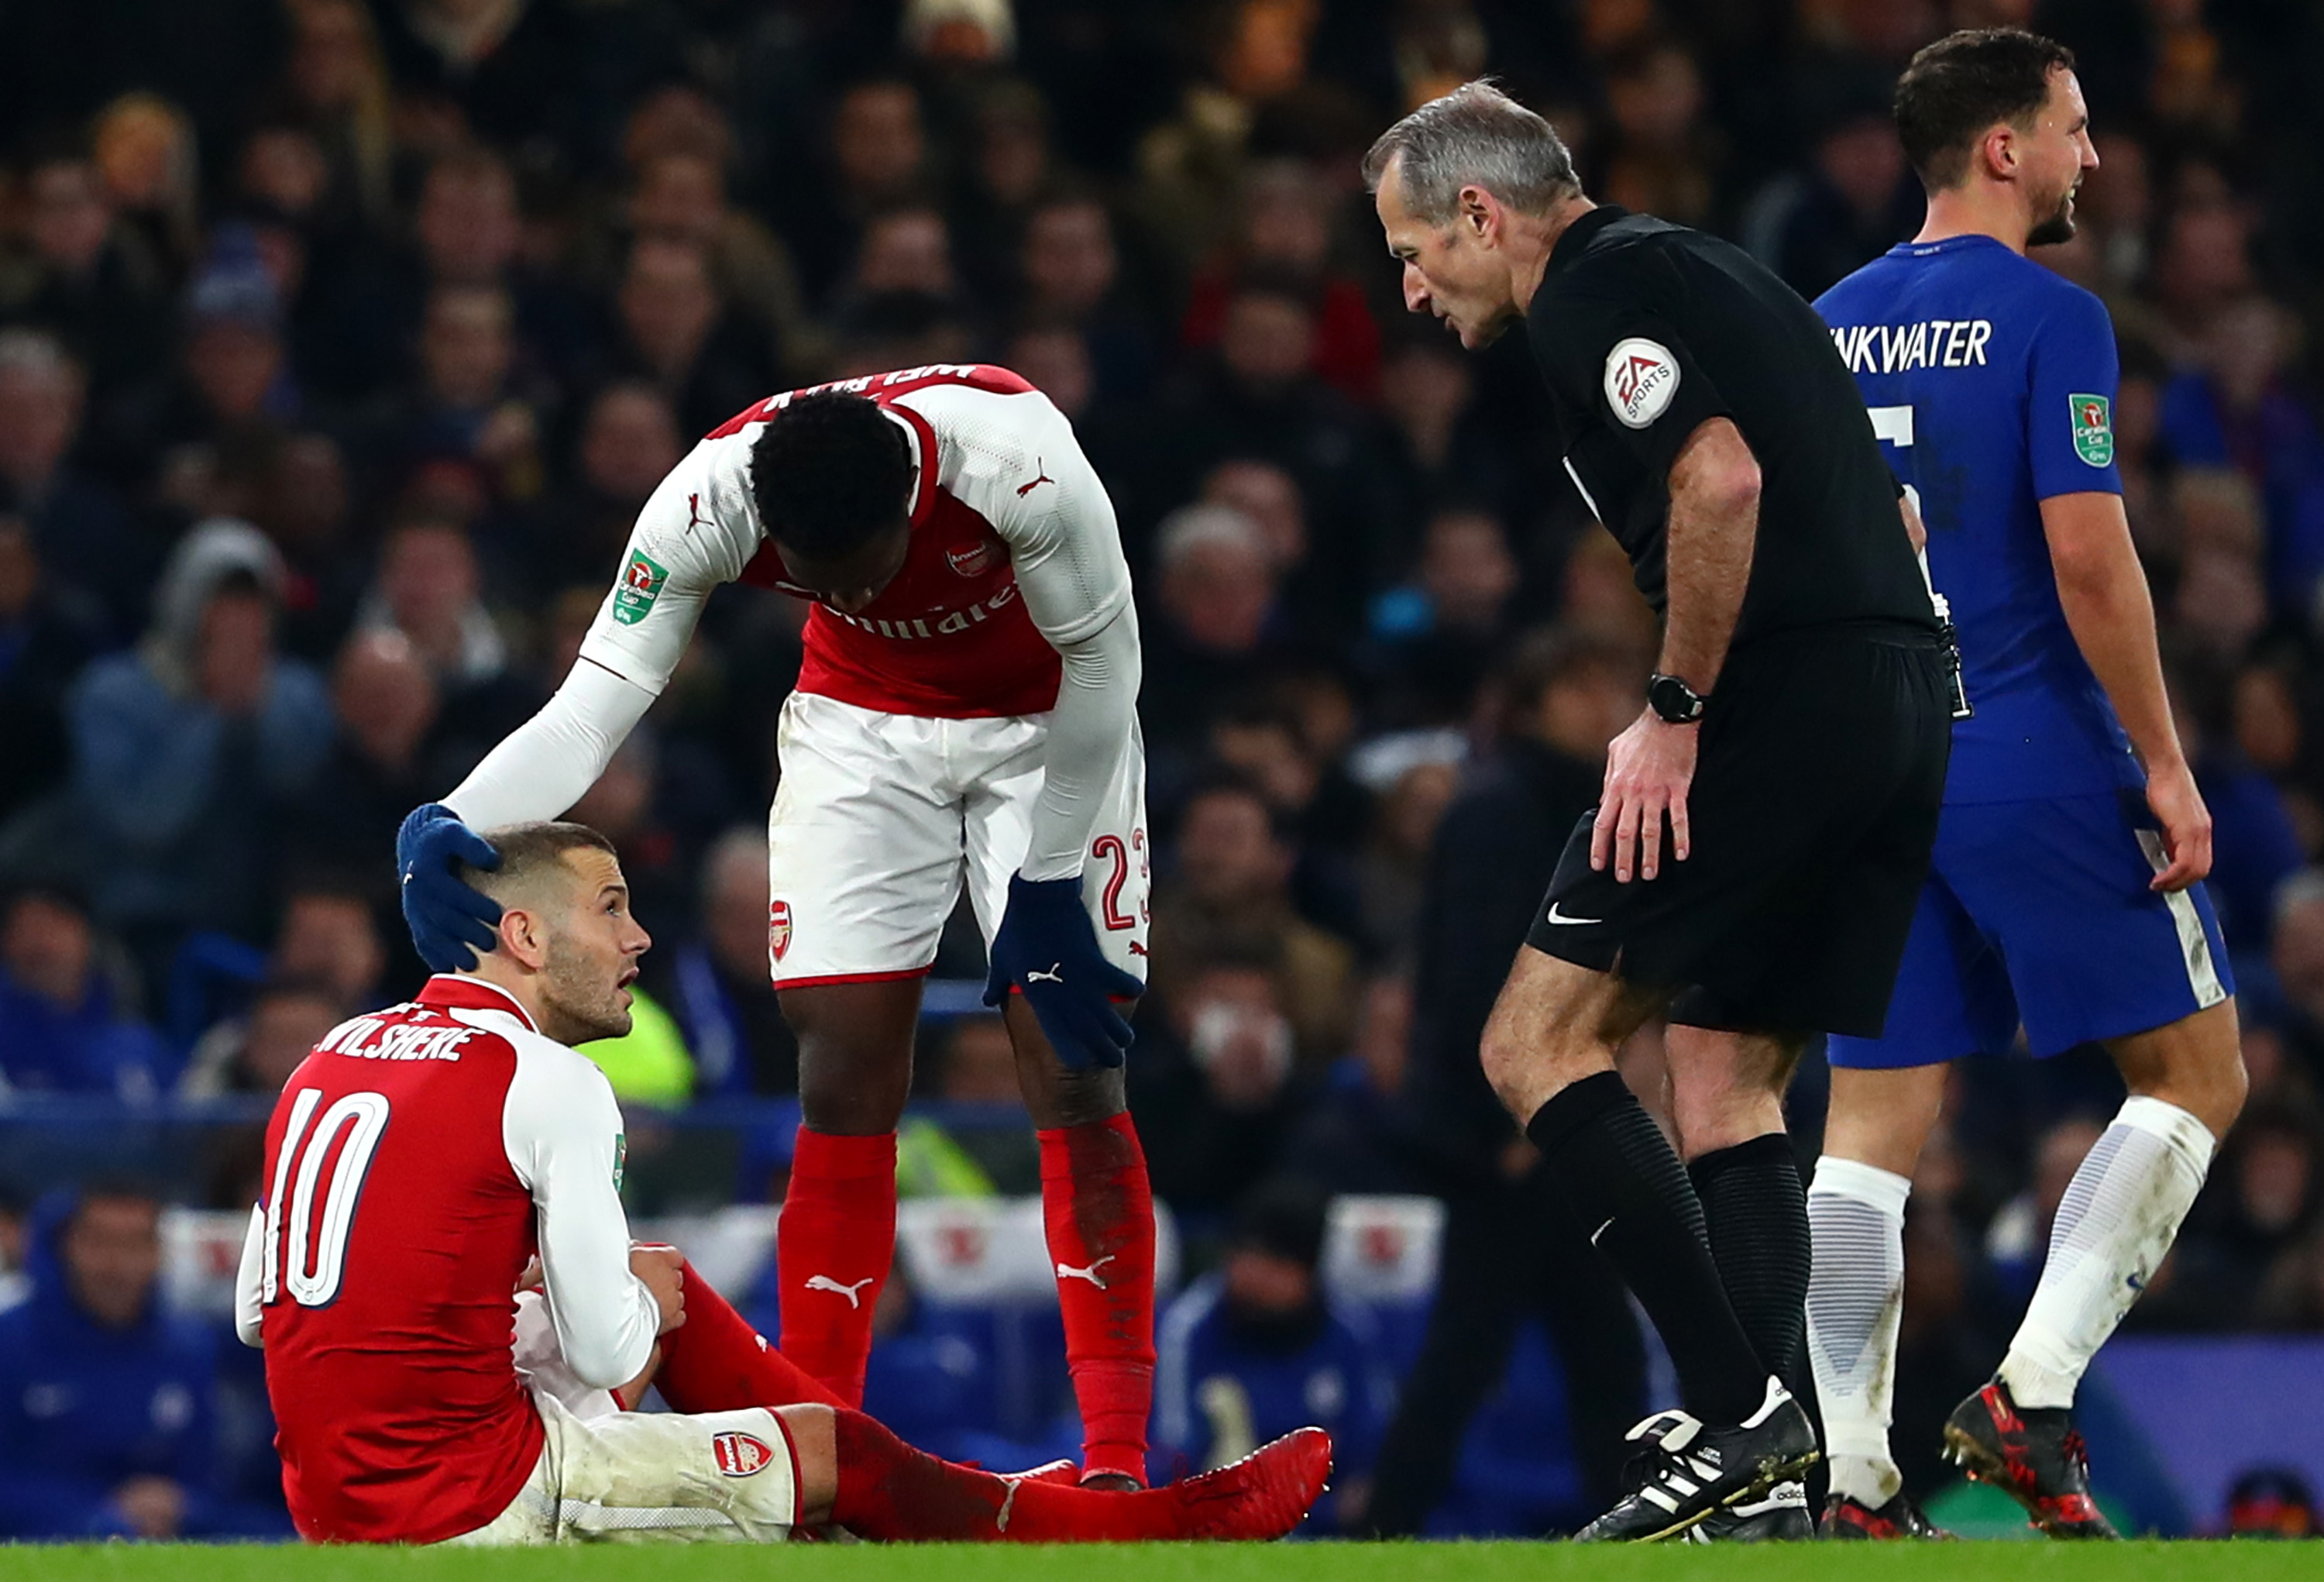 Arsenal Vs Chelsea: Highlights and analysis - Intriguing draw